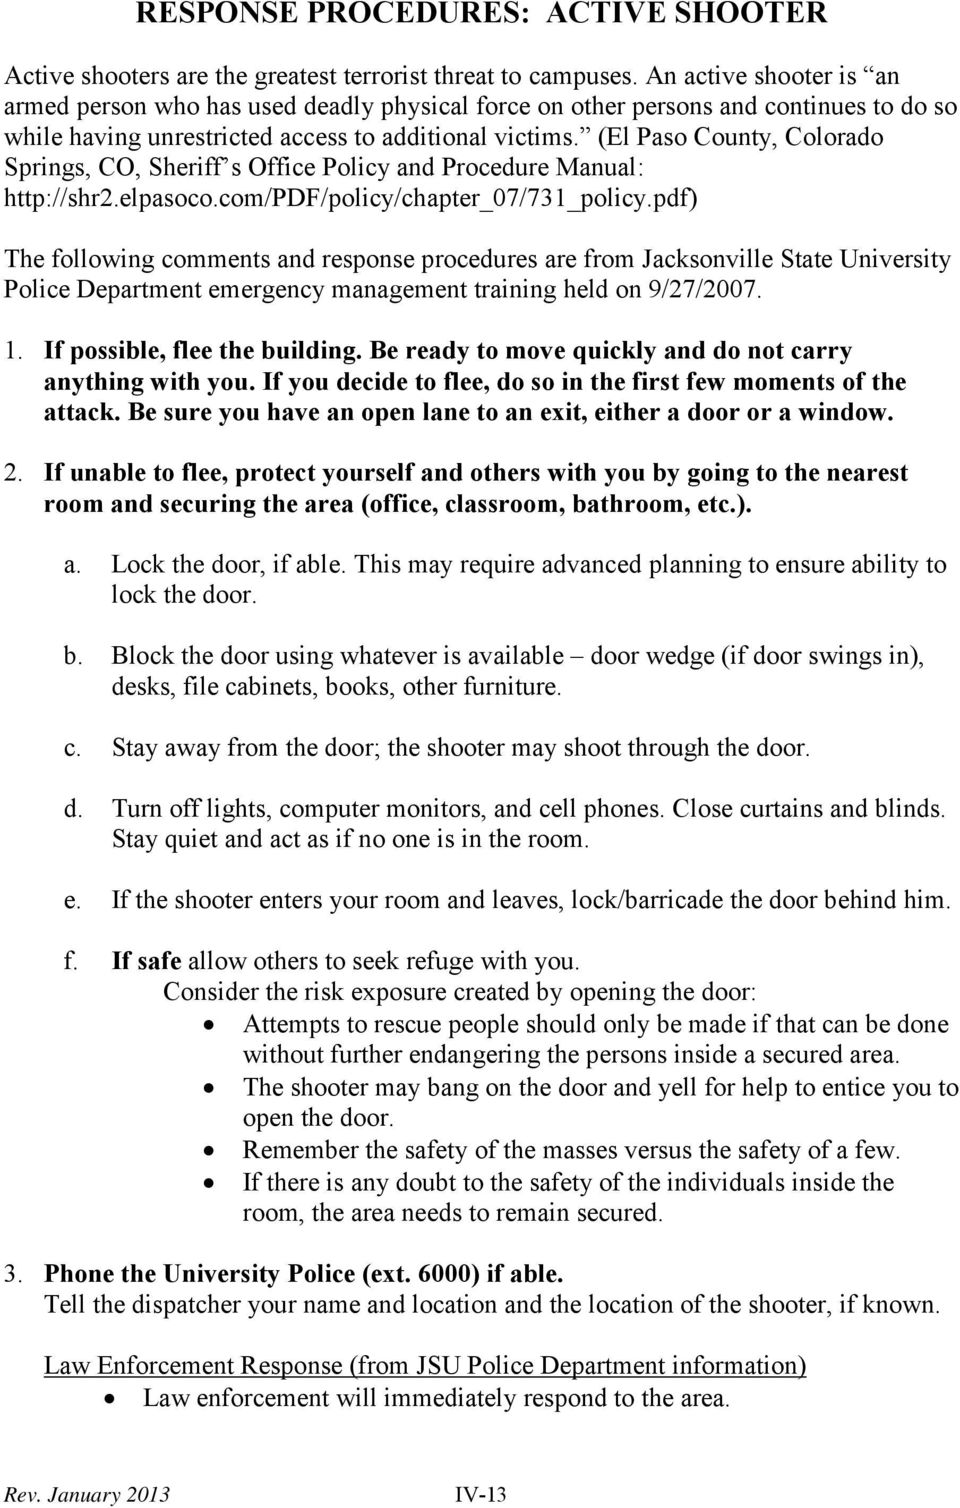 (El Paso County, Colorado Springs, CO, Sheriff s Office Policy and Procedure Manual: http://shr2.elpasoco.com/pdf/policy/chapter_07/731_policy.